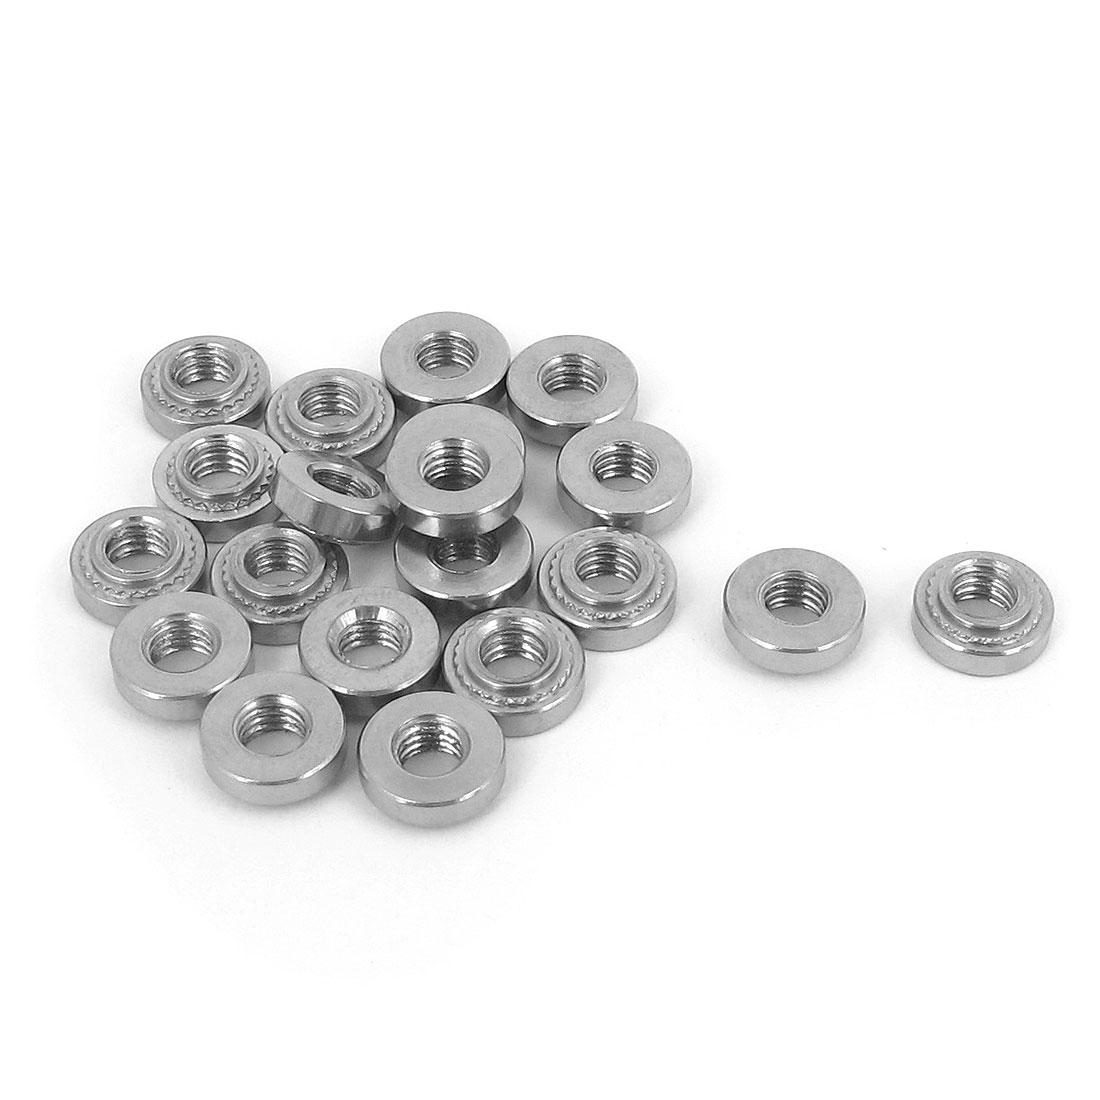 M4 Stainless Steel Self Clinching Rivet Nut Fastener 20pcs for 1mm Thin Plates